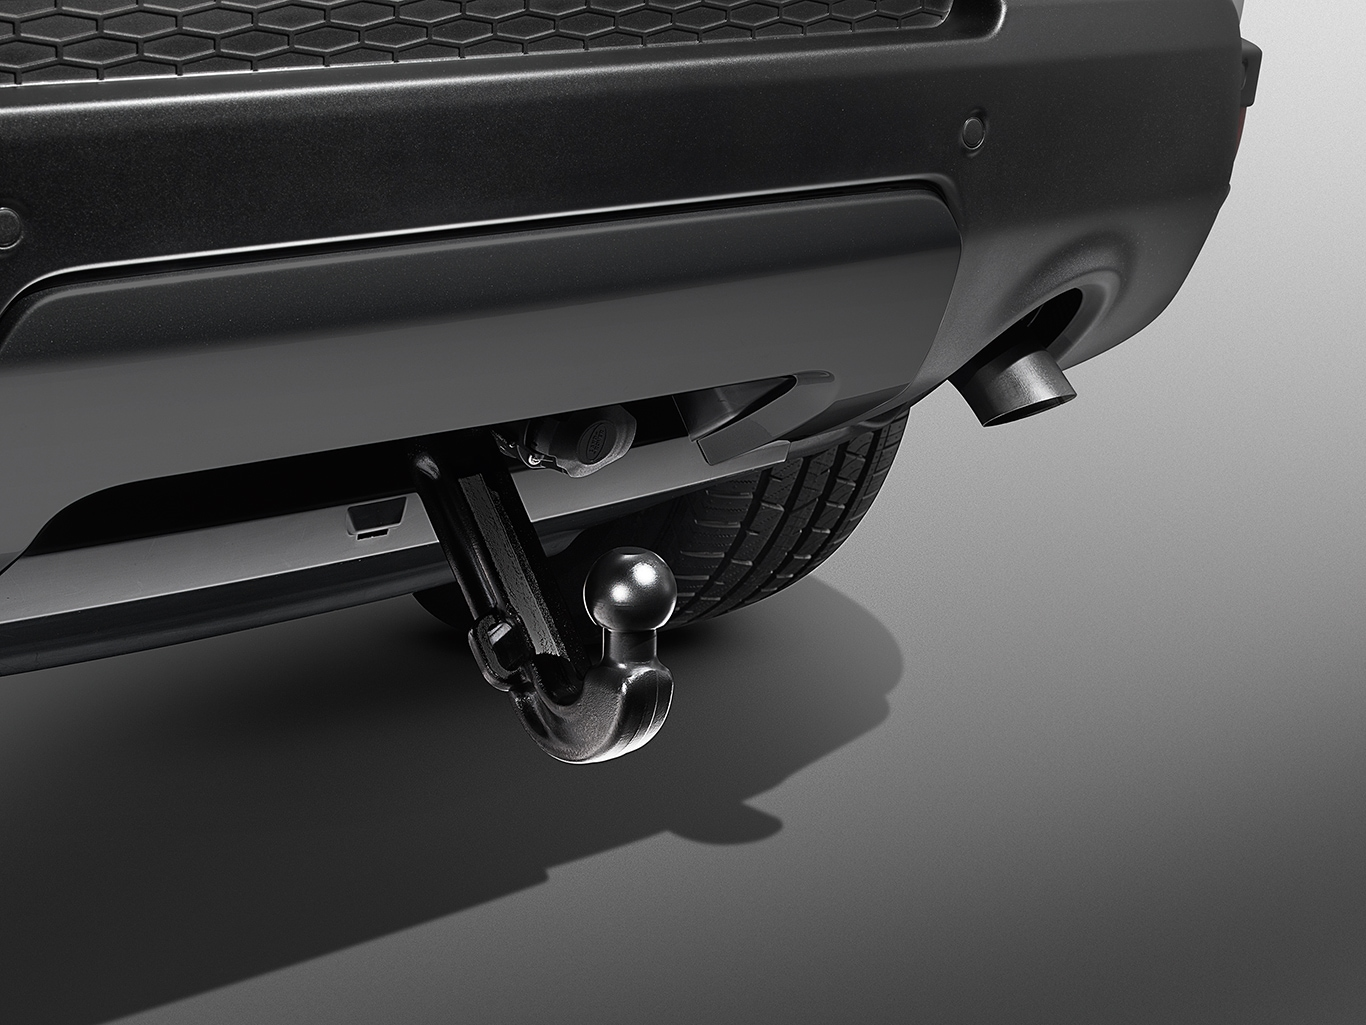 Towing System - Electrically Deployable Tow Bar